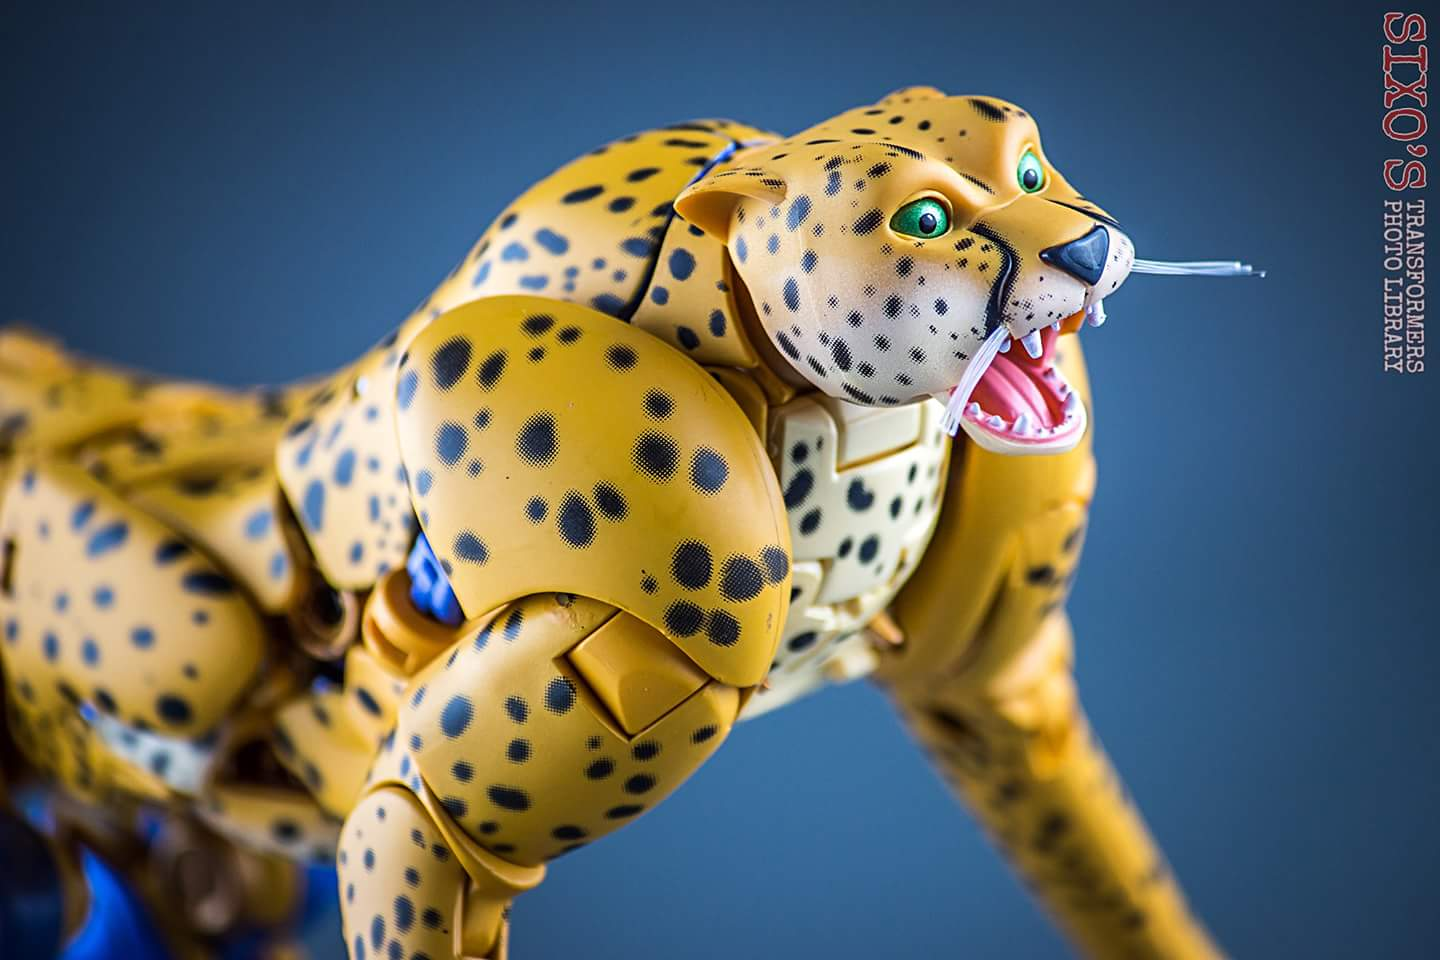 [Masterpiece] MP-34 Cheetor et MP-34S Shadow Panther (Beast Wars) - Page 2 Sv67nPen